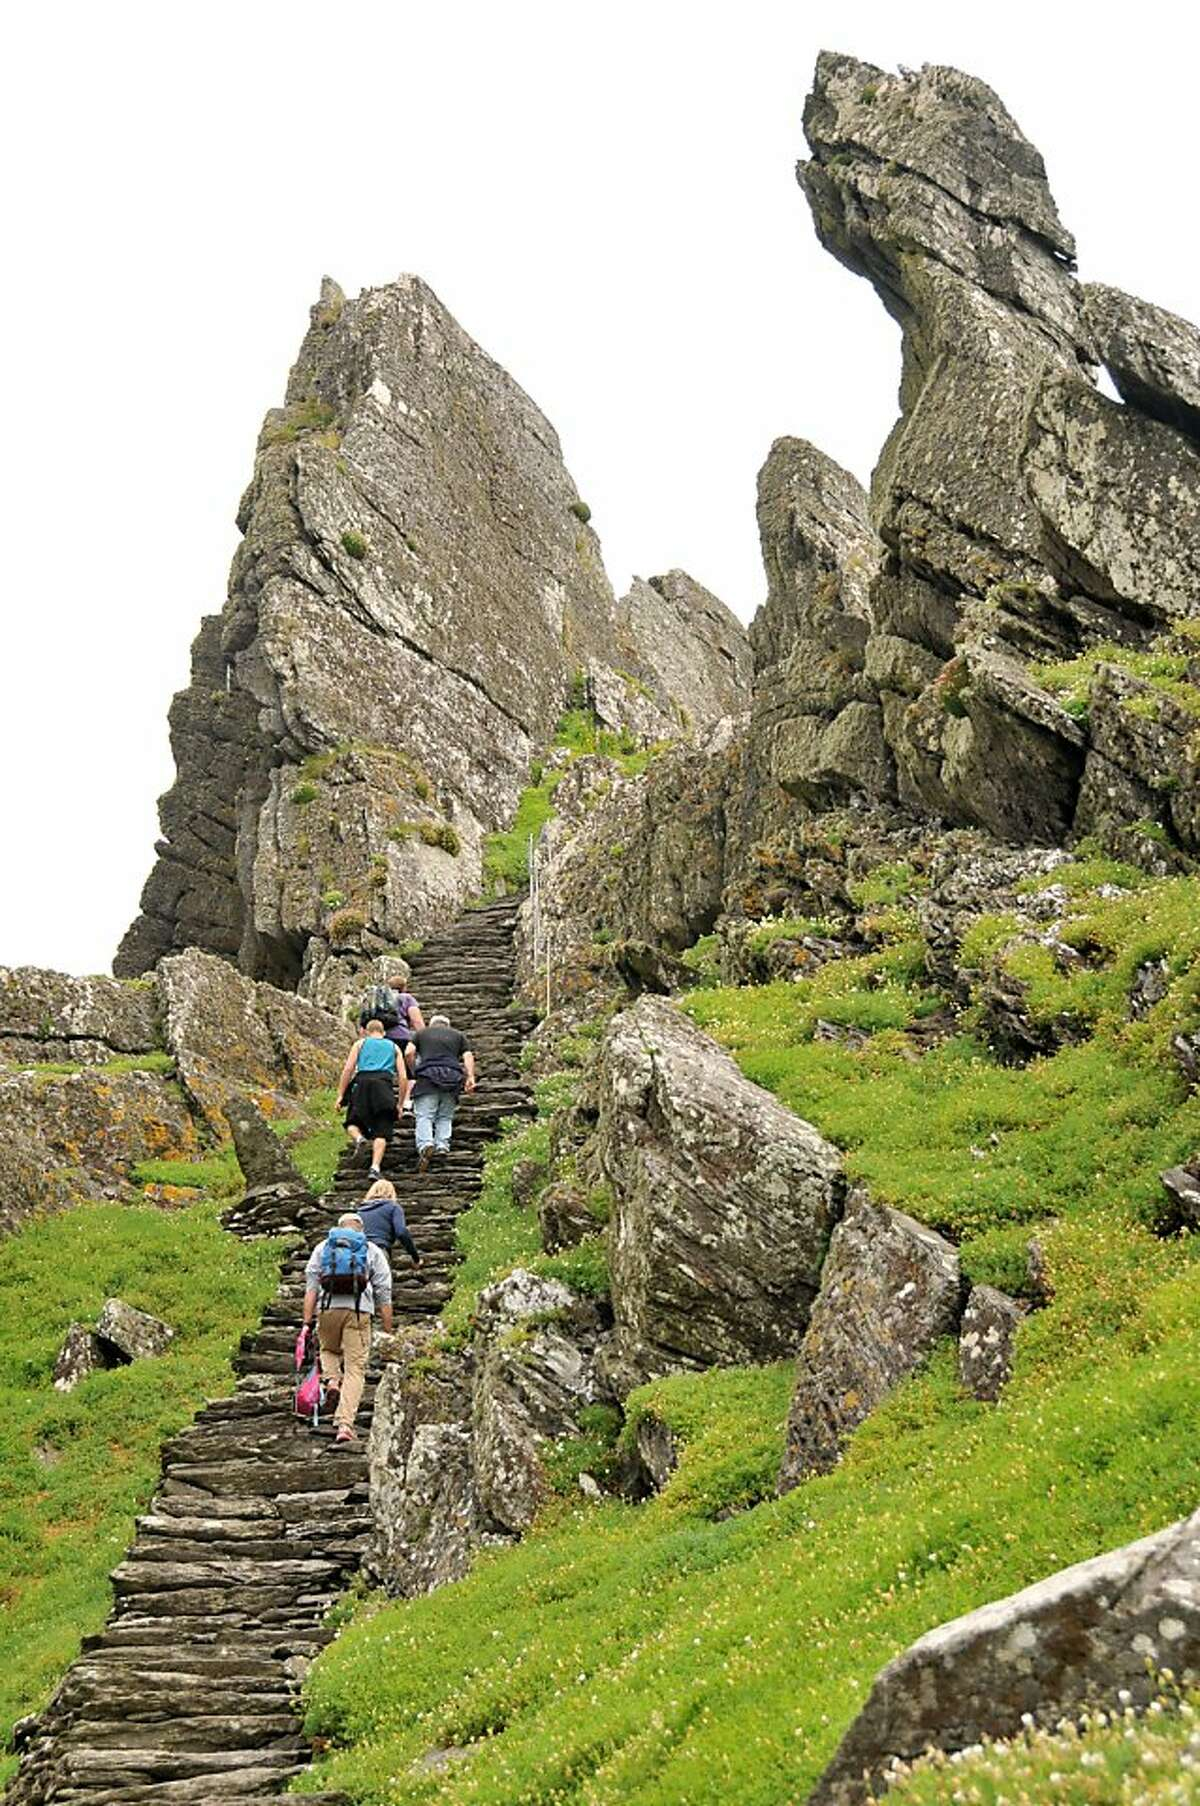 Some of the 600 stone steps leading to the hermit monks' monastery atop Skellig Michael Island.